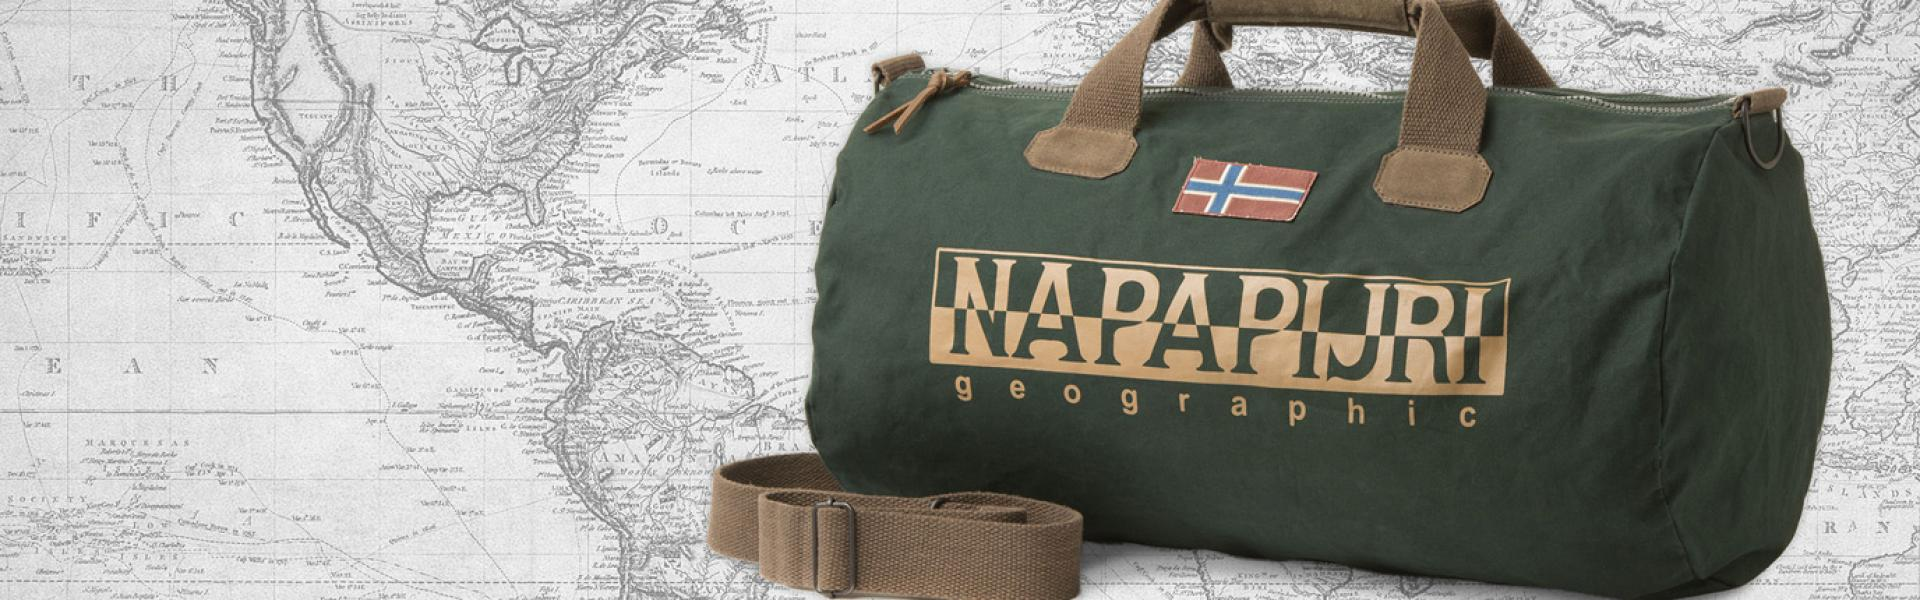 napapijri-icons-behring-bag-canvas.jpg